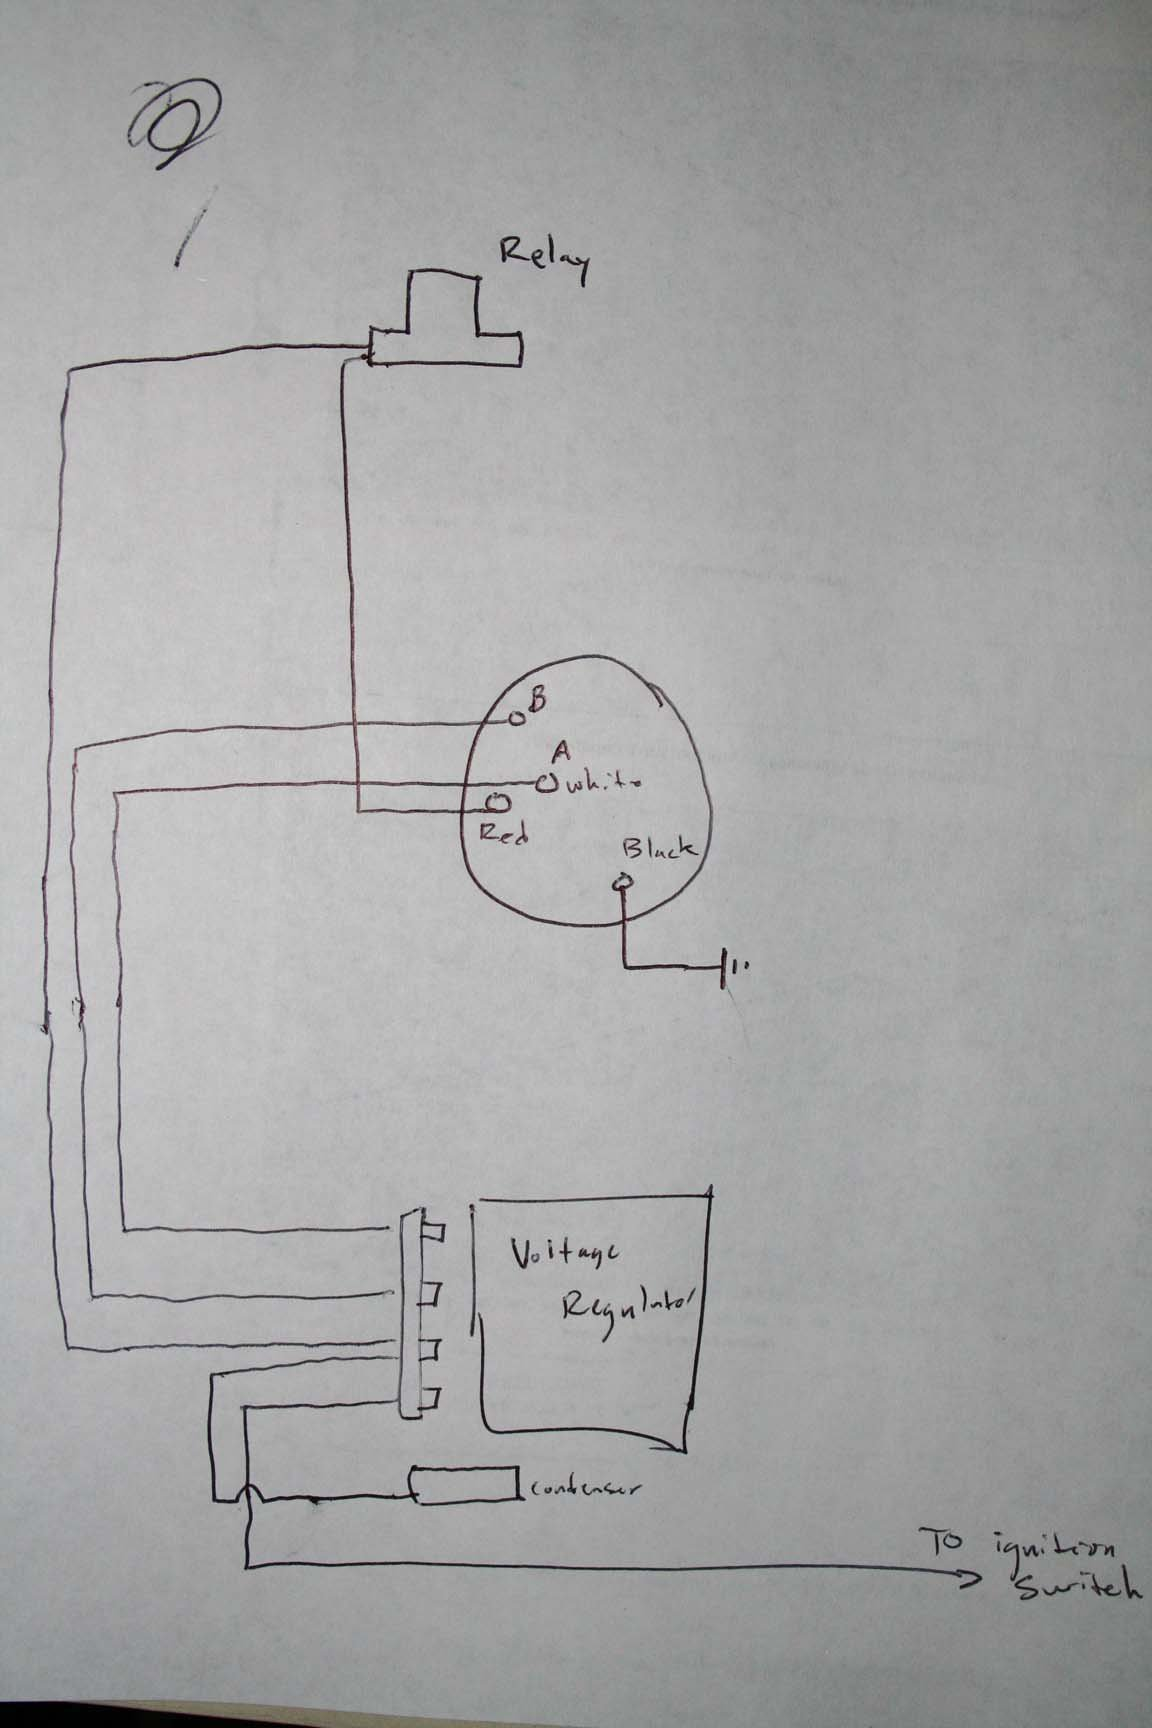 hight resolution of echlin voltage regulator wiring diagram wiring libraryechlin voltage regulator wiring diagram